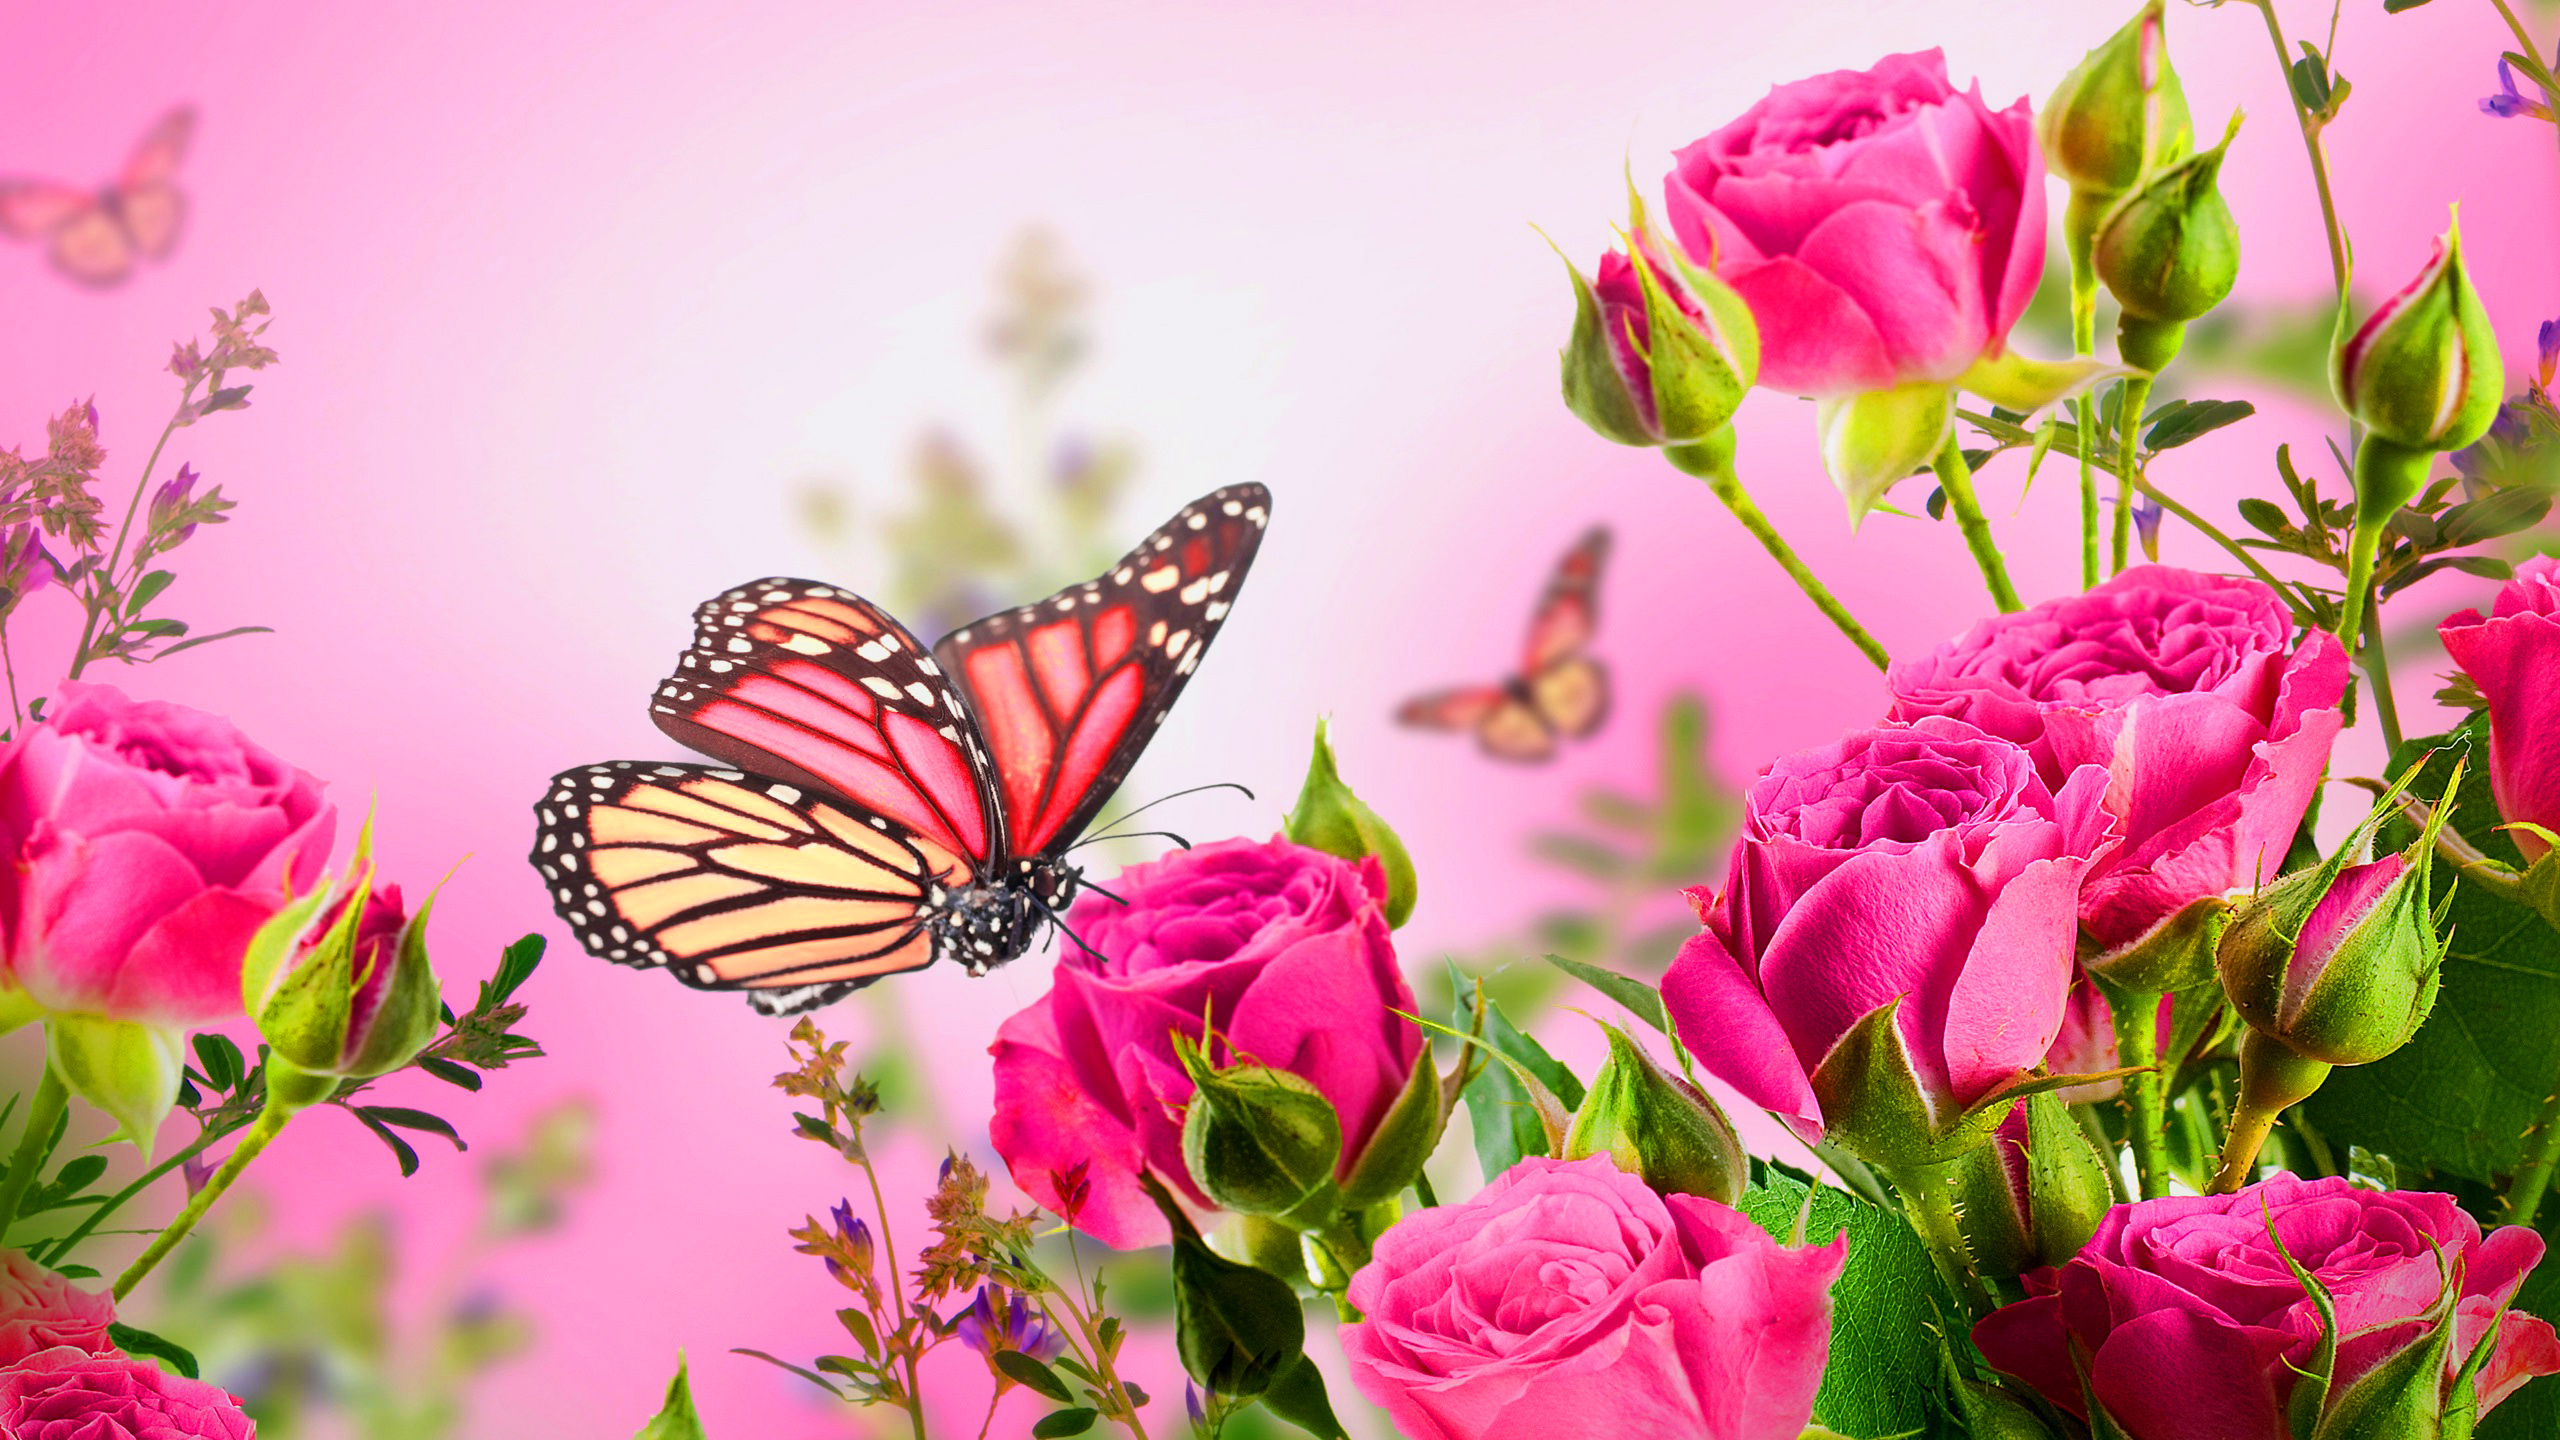 Must see Wallpaper High Resolution Butterfly - High_Resolution_Pictures_of_Rose_Flowers_and_Butterfly_for_Wallpaper  Photograph_69333.jpg